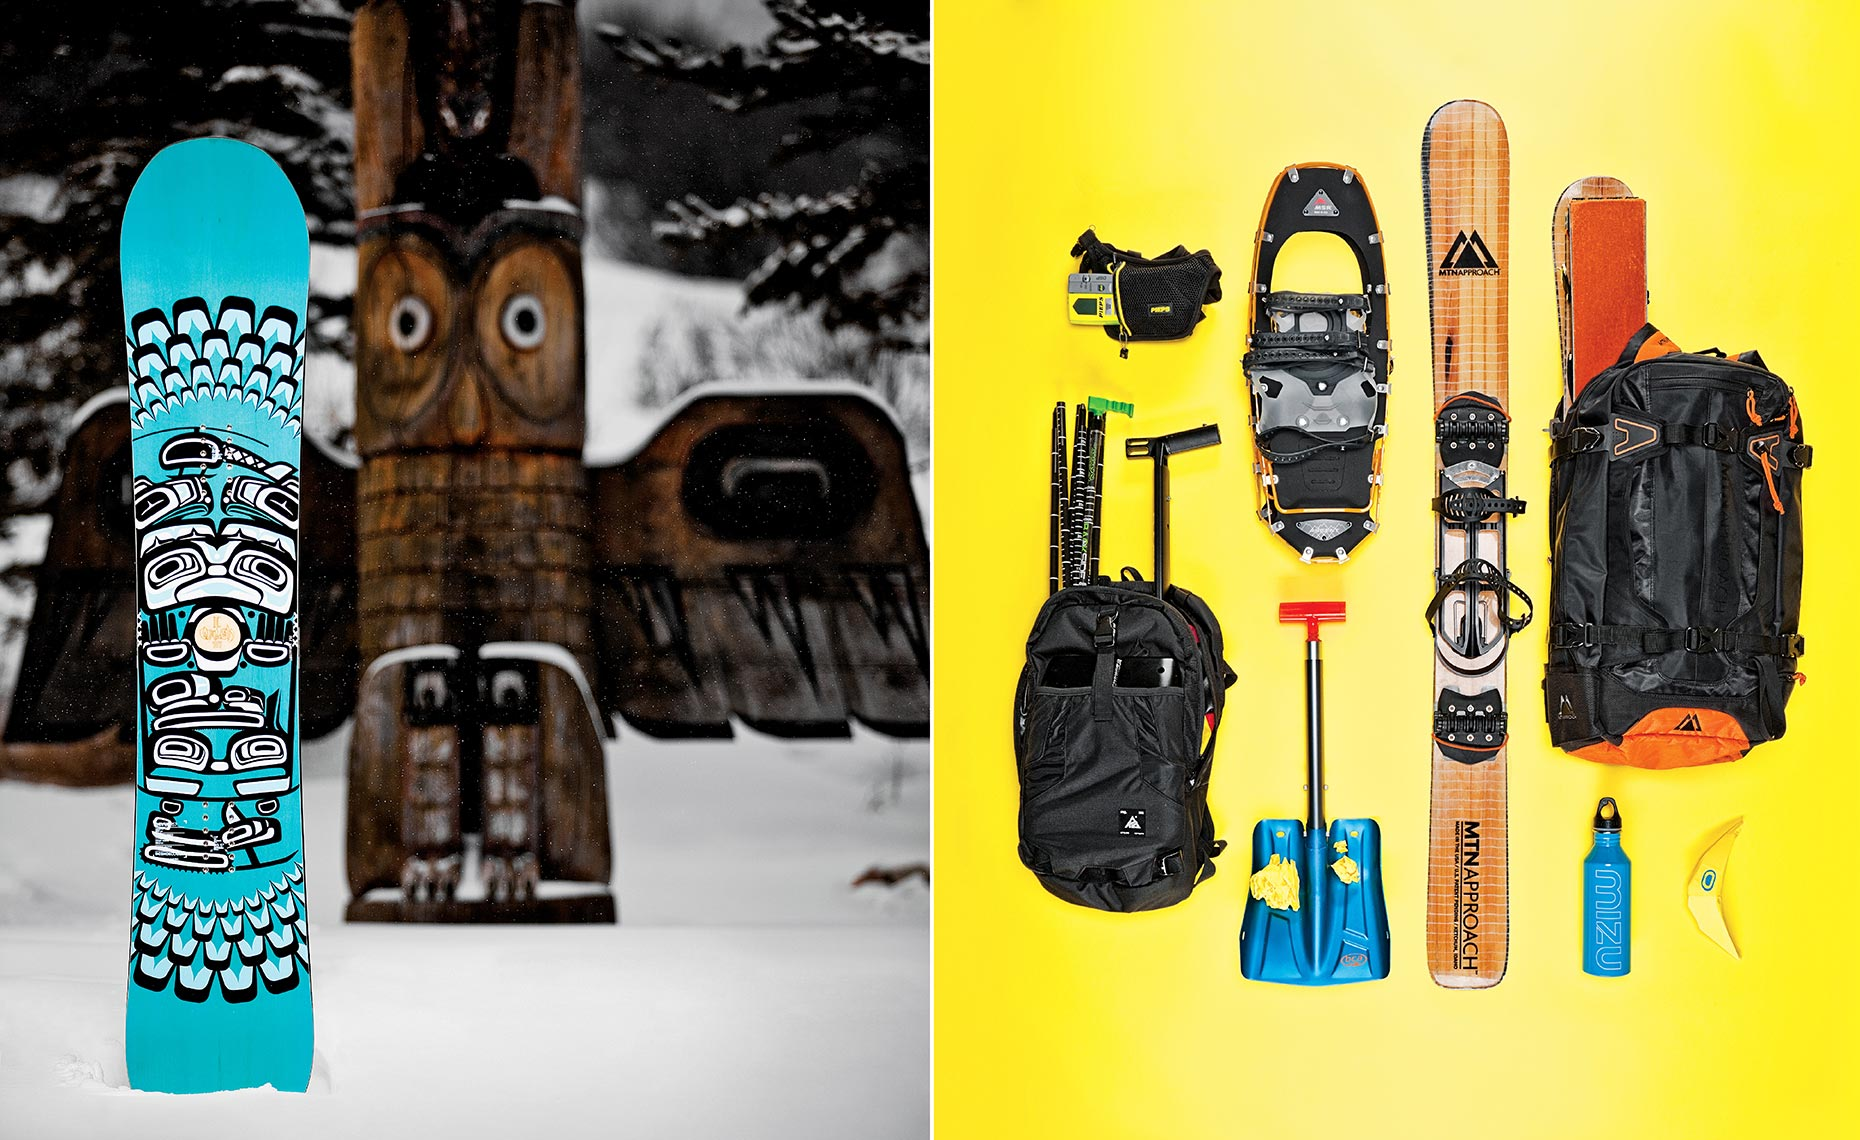 11_Snowboarding_Snowboards_Backcountry_Product_Chris_Wellhausen_Photography-DUP.JPG